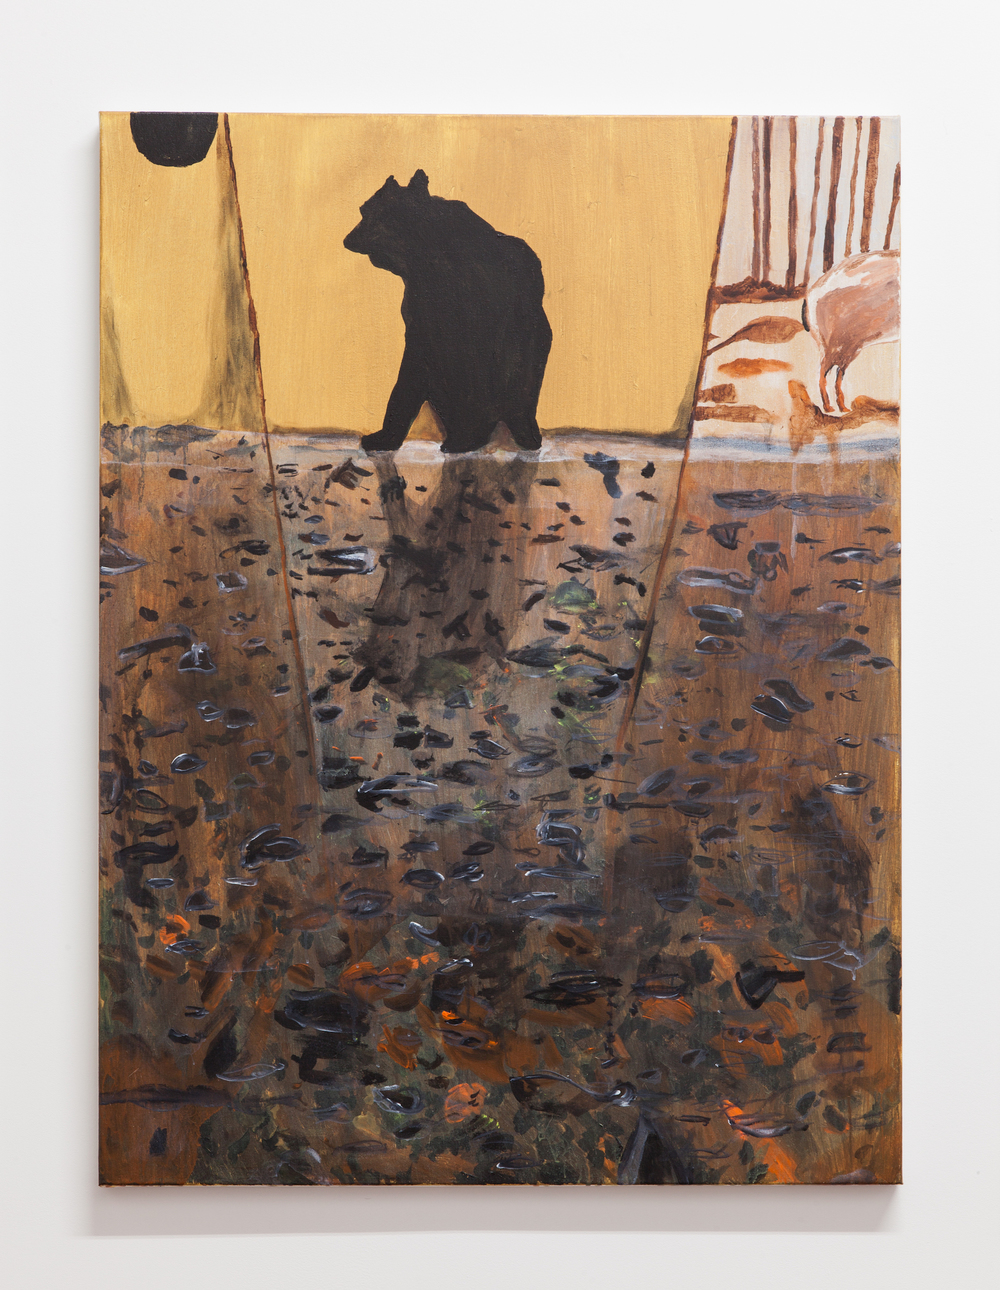 Jocko Weyland,  Bear No. 1 , 2014, acrylic on canvas, 48 x 36 in